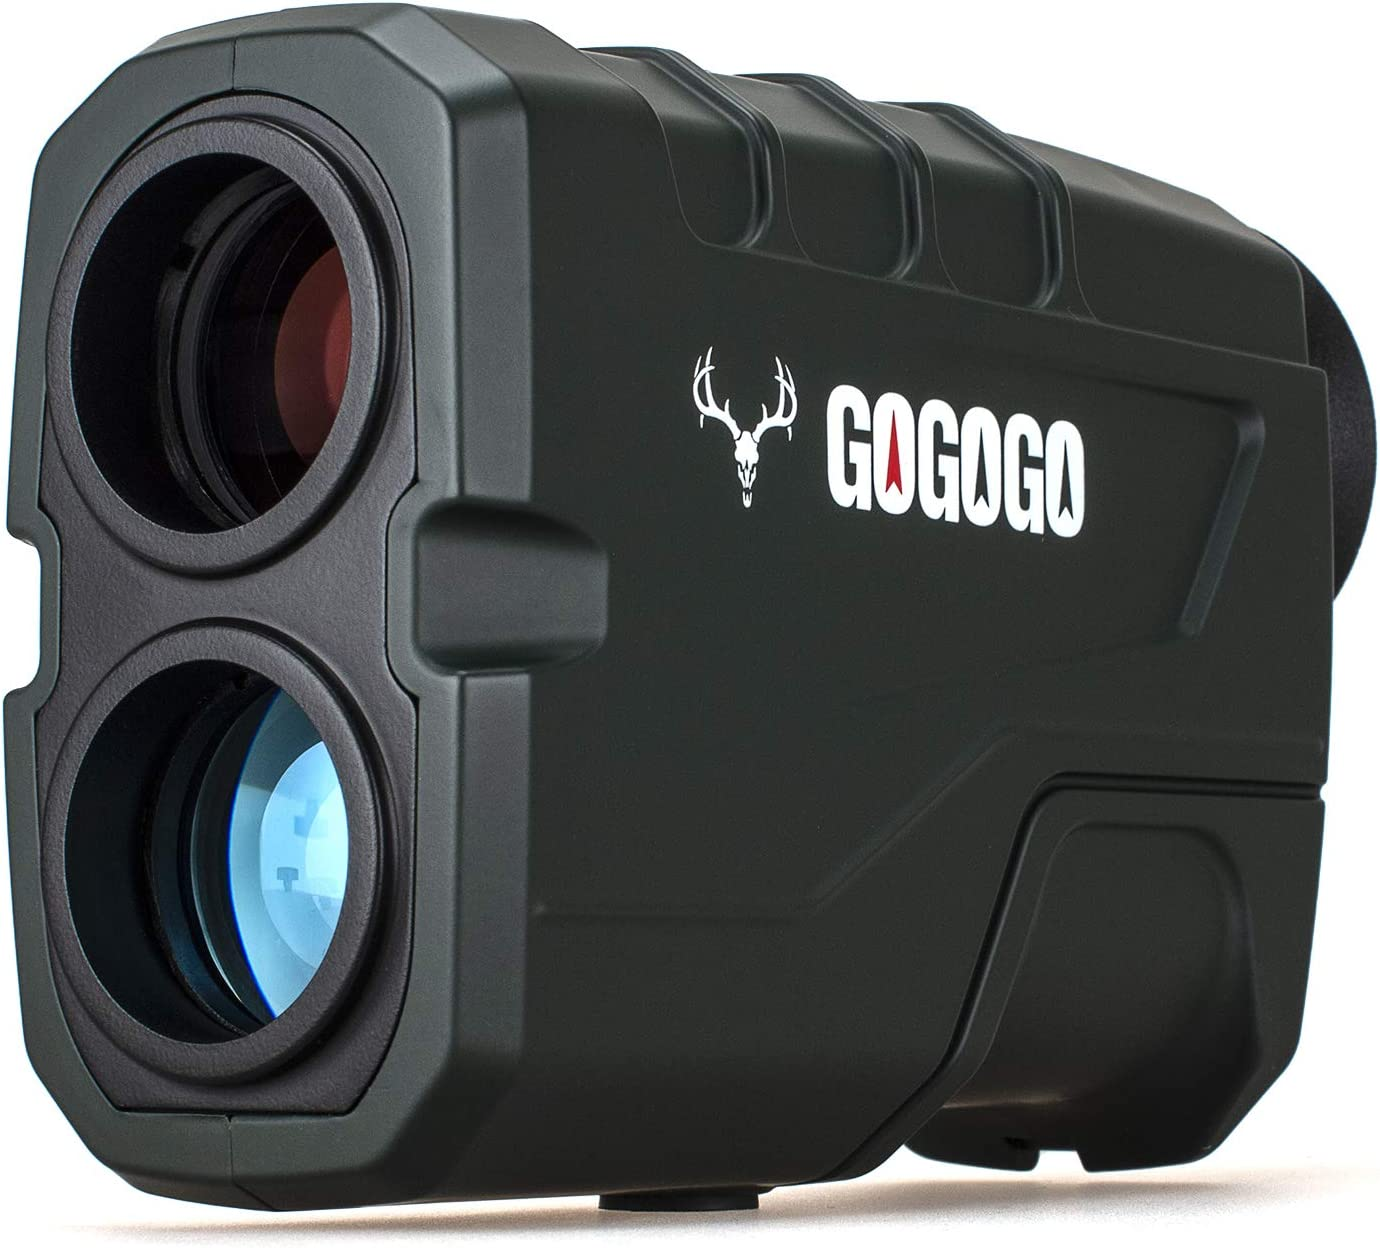 Gogogo Sport Hunting Rangefinder – 650 1200 Yards Laser Range Finder for Hunting and Golf with Speed, Slope, Scan and Normal Measurements – Rechargeable – with USB Cable